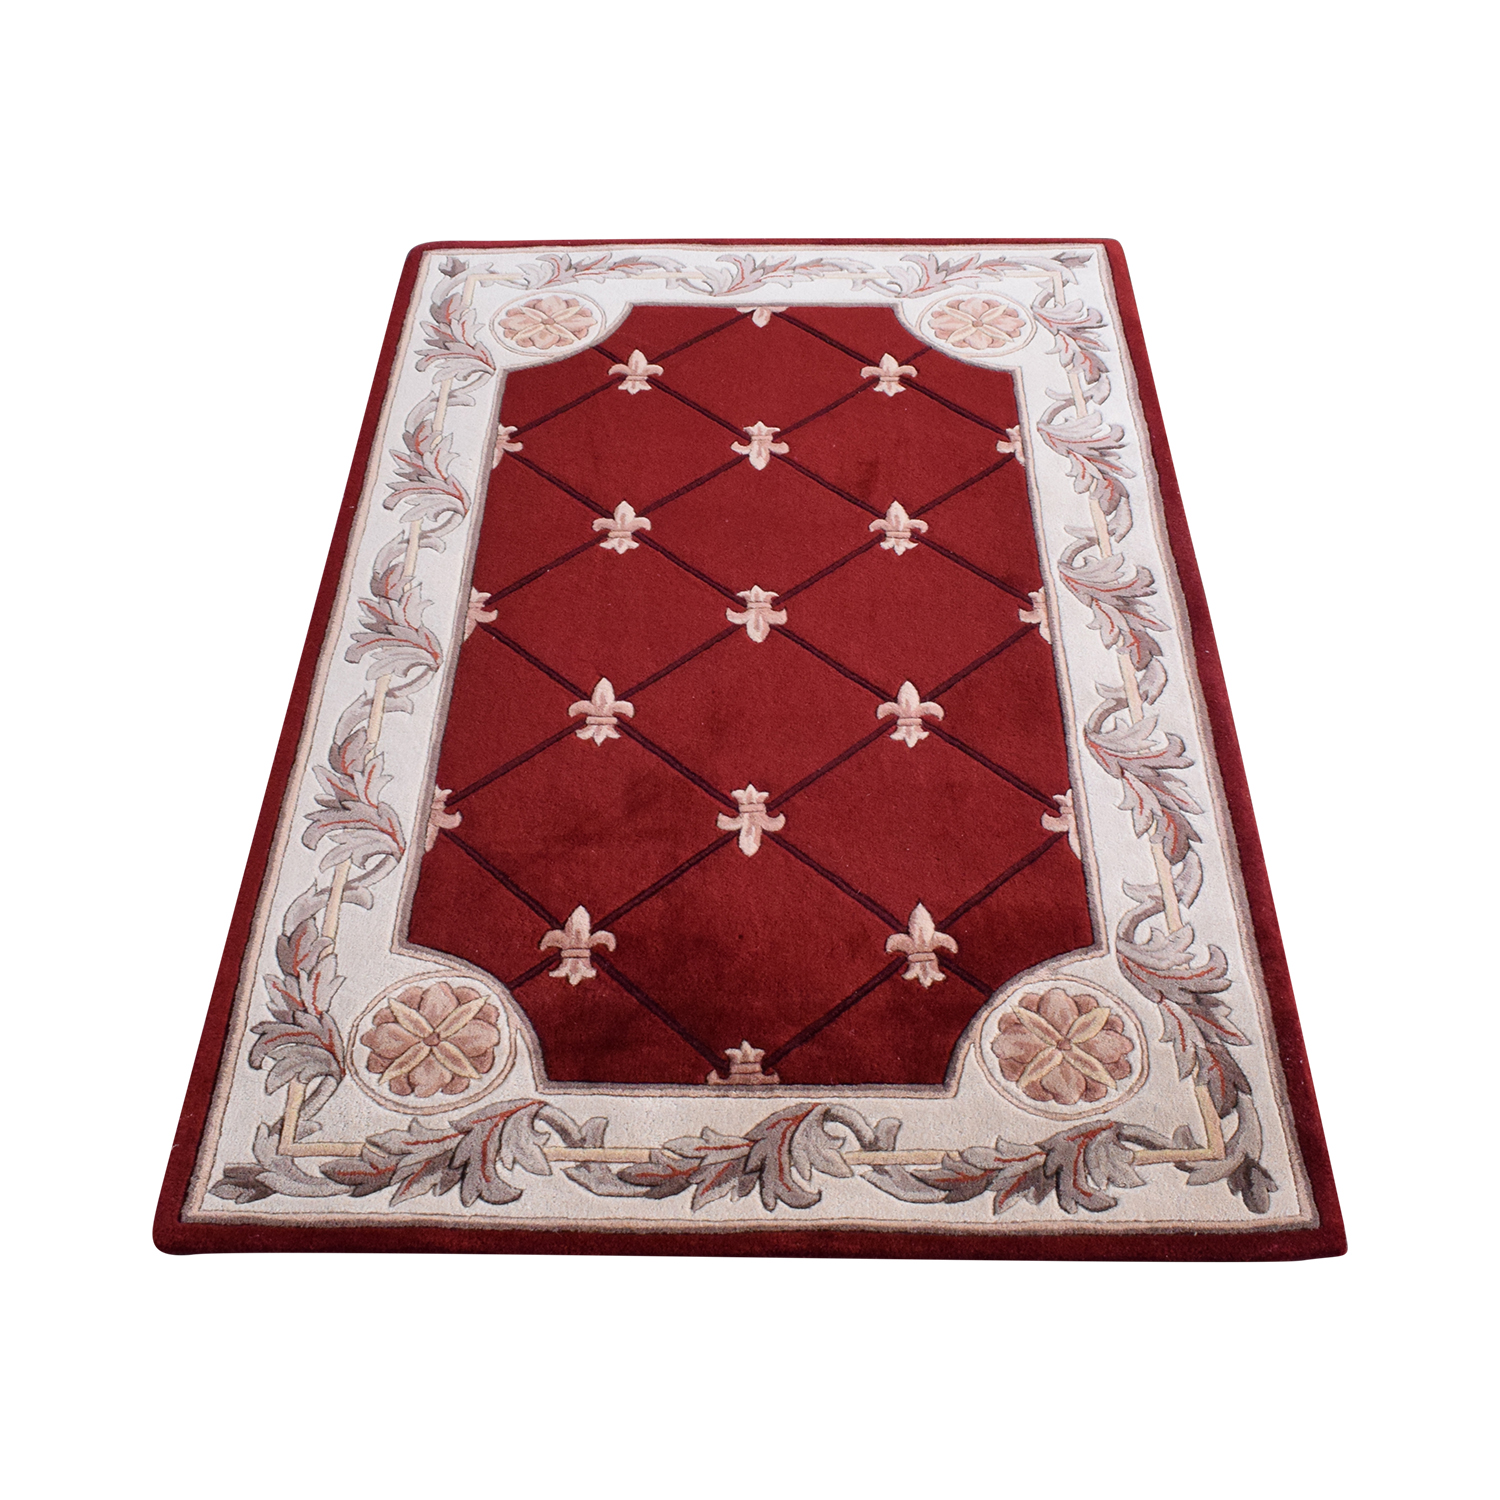 Macy's Macy's Kas Jewel Collection Classical Designed Red Area Rug nyc